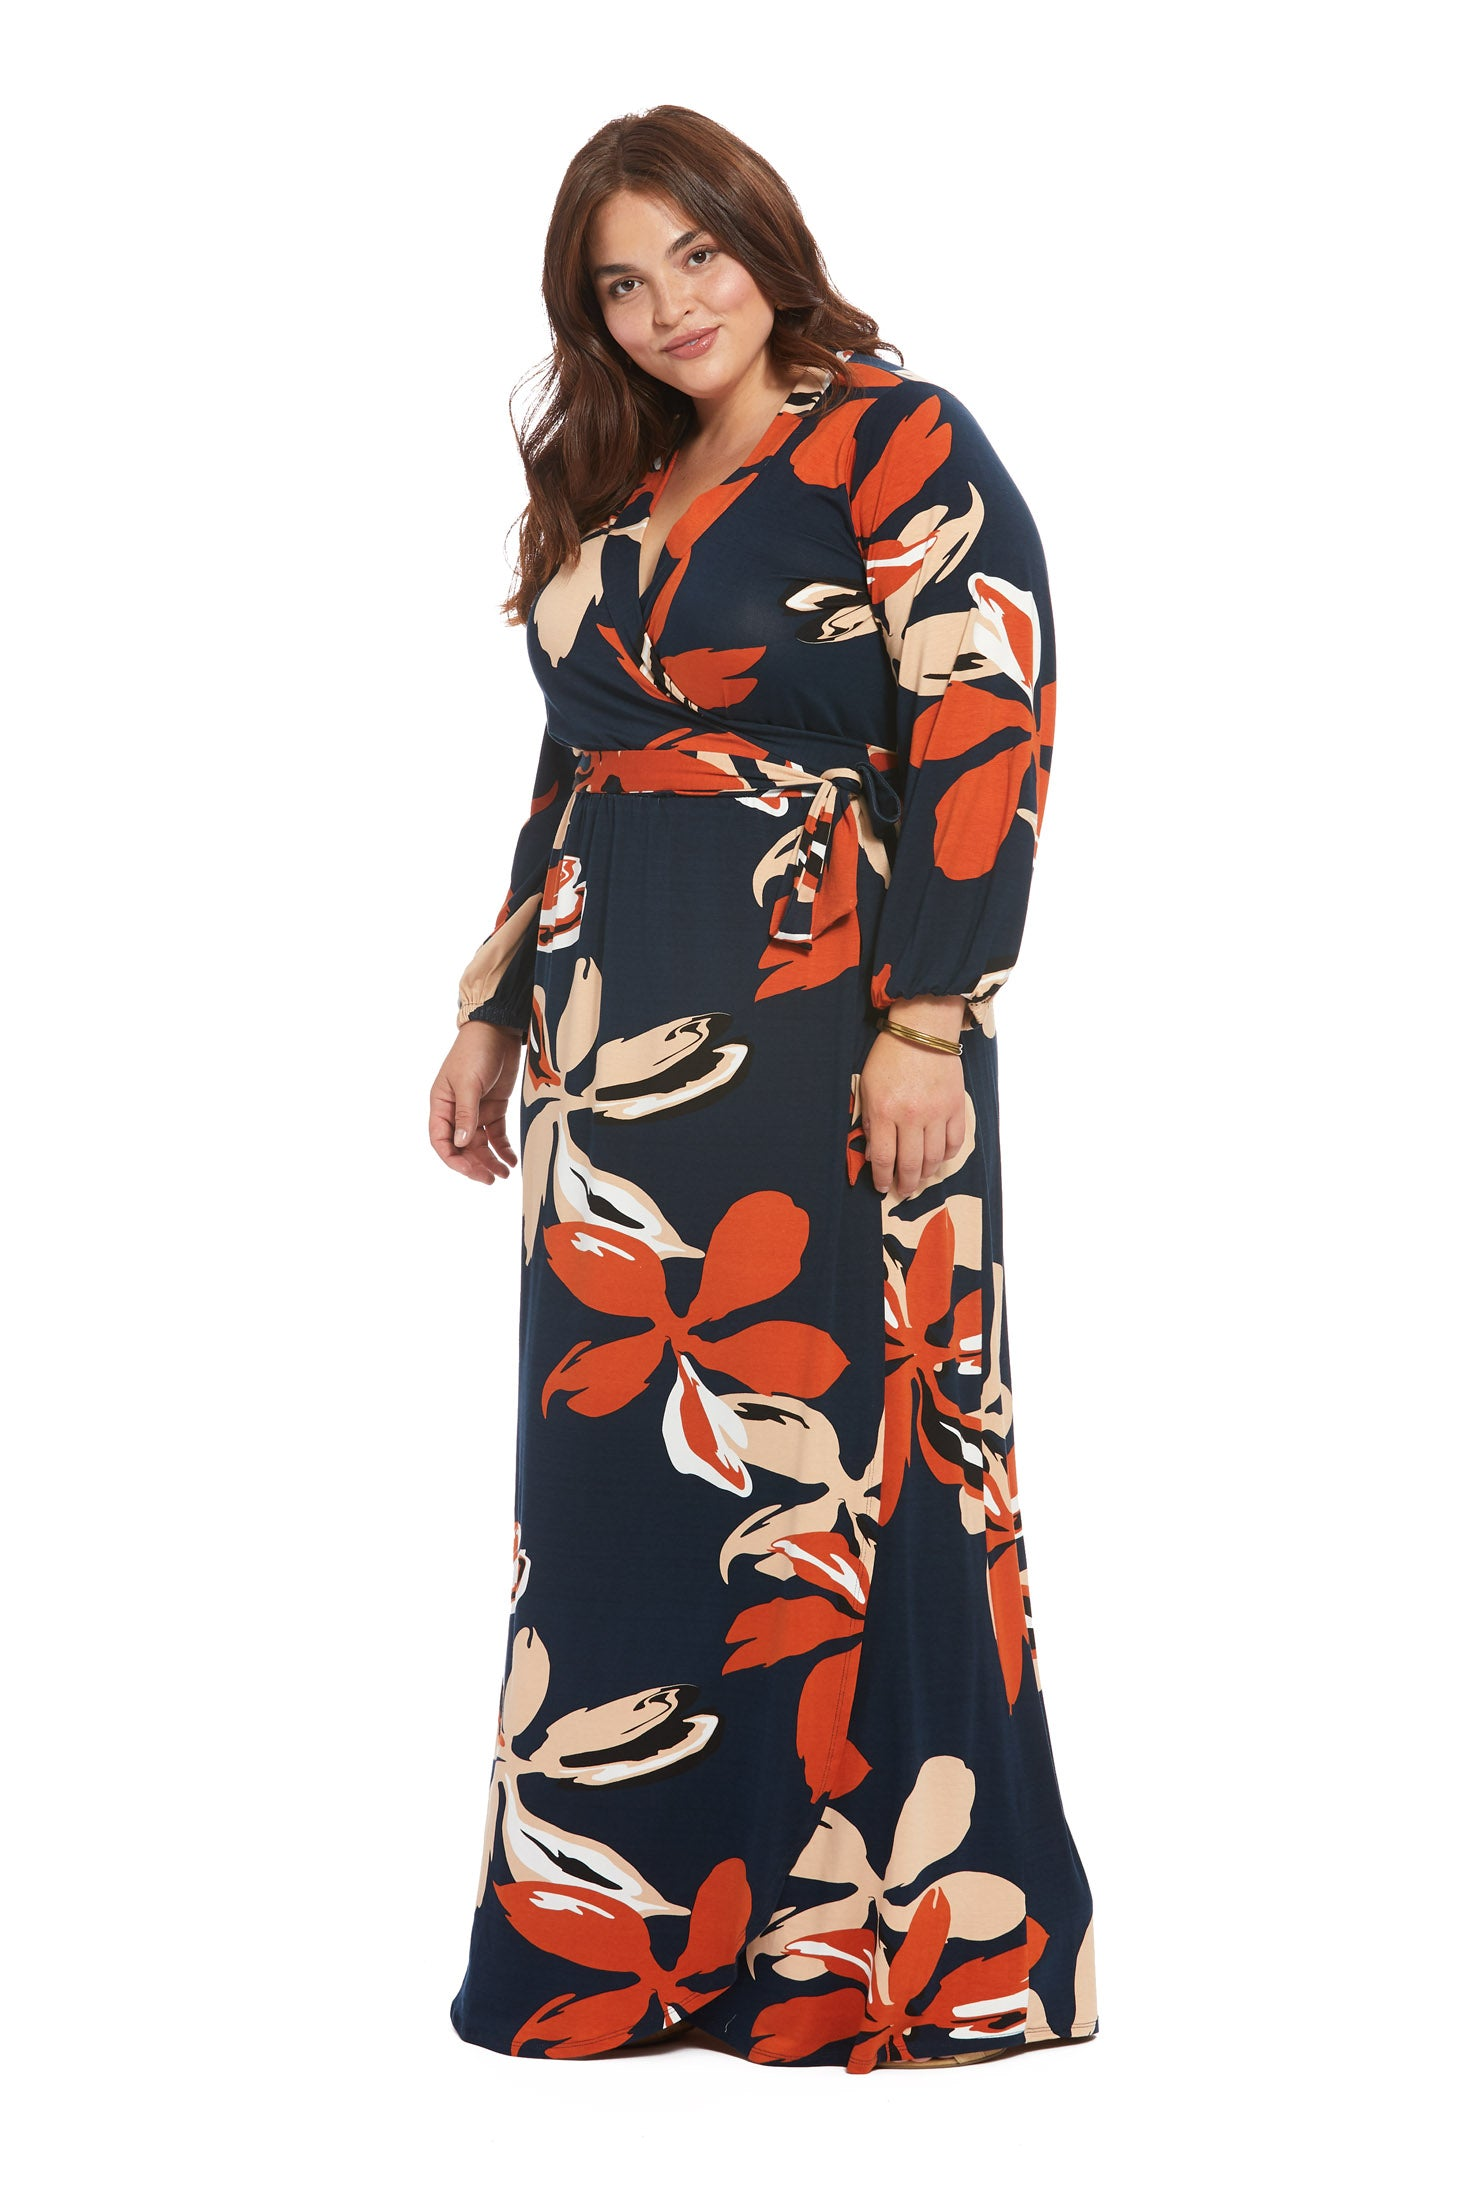 Greenwich Wrap Dress - Pop Floral, Plus Size